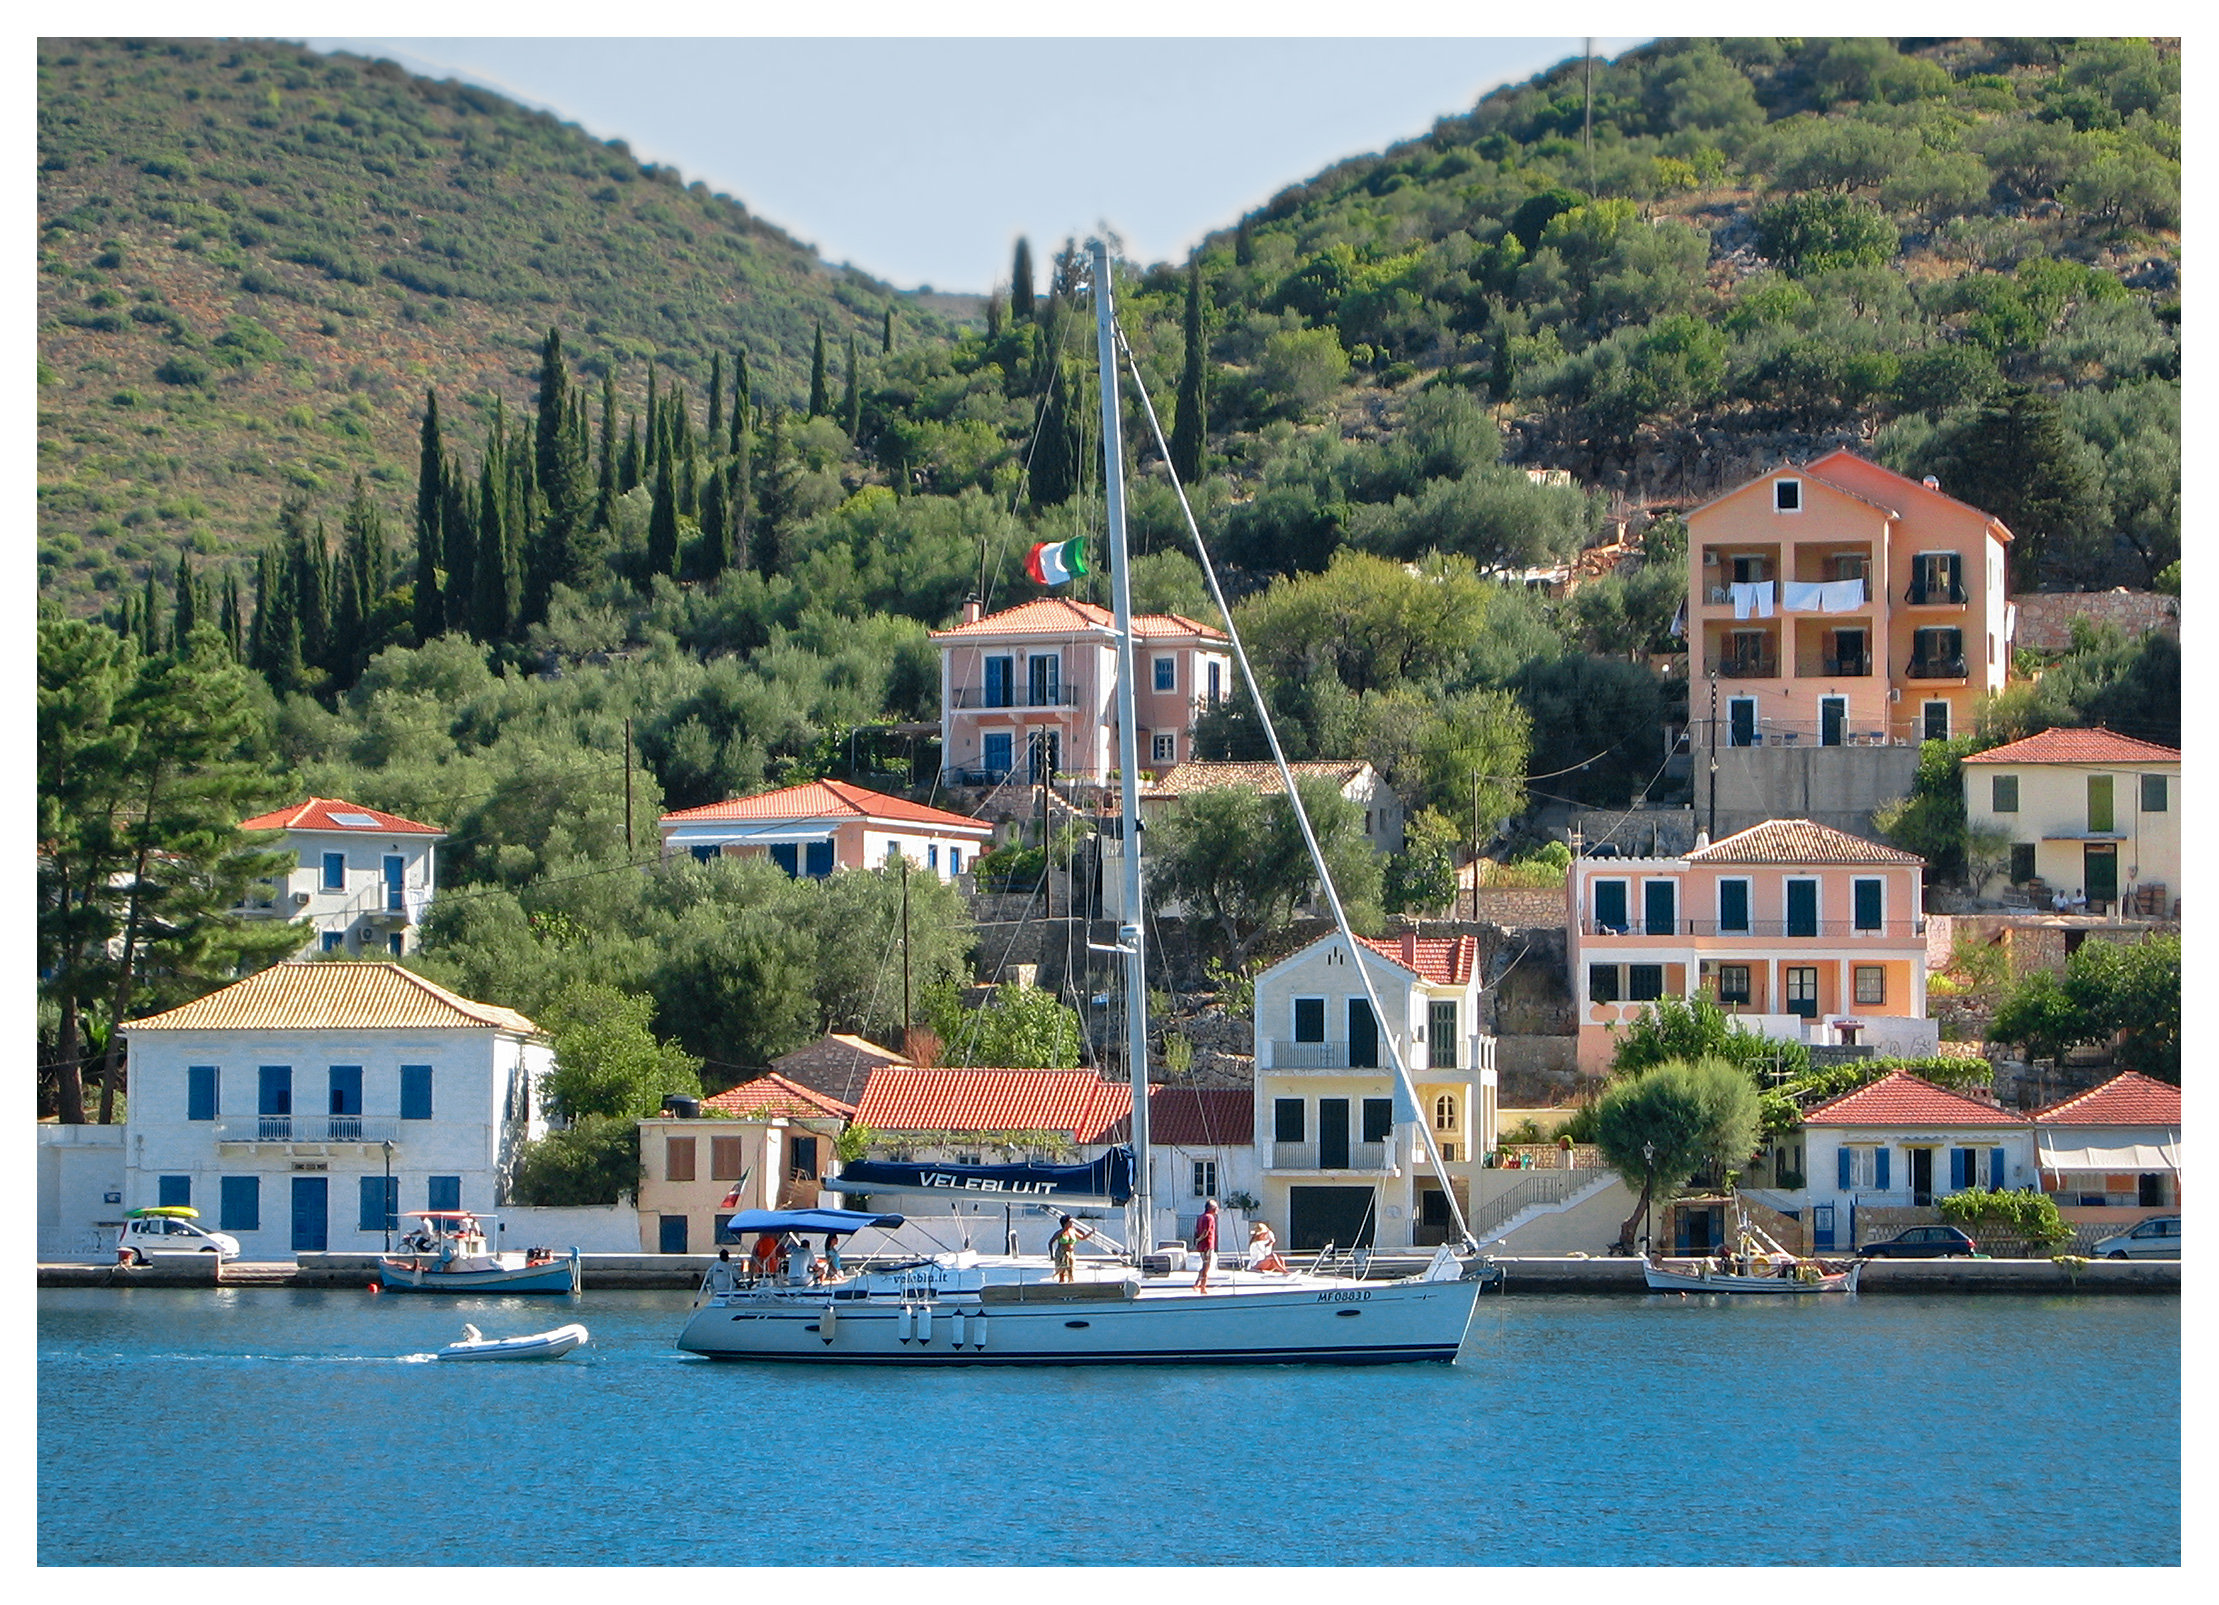 Yachting photography: A yacht passing by the seafront at Vathi town, Ithaka, Greece